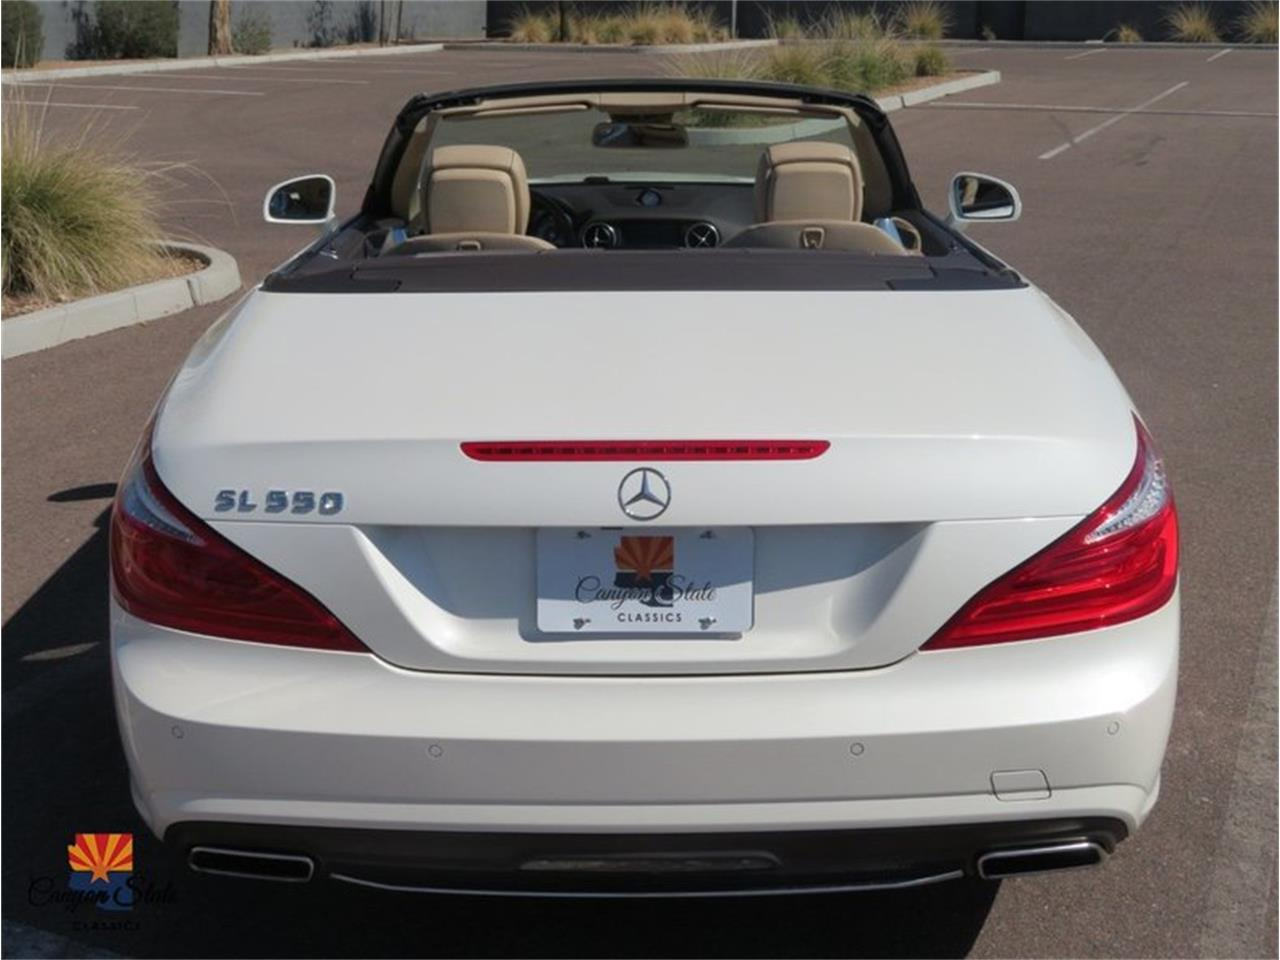 2013 Mercedes-Benz SL-Class for sale in Tempe, AZ – photo 58